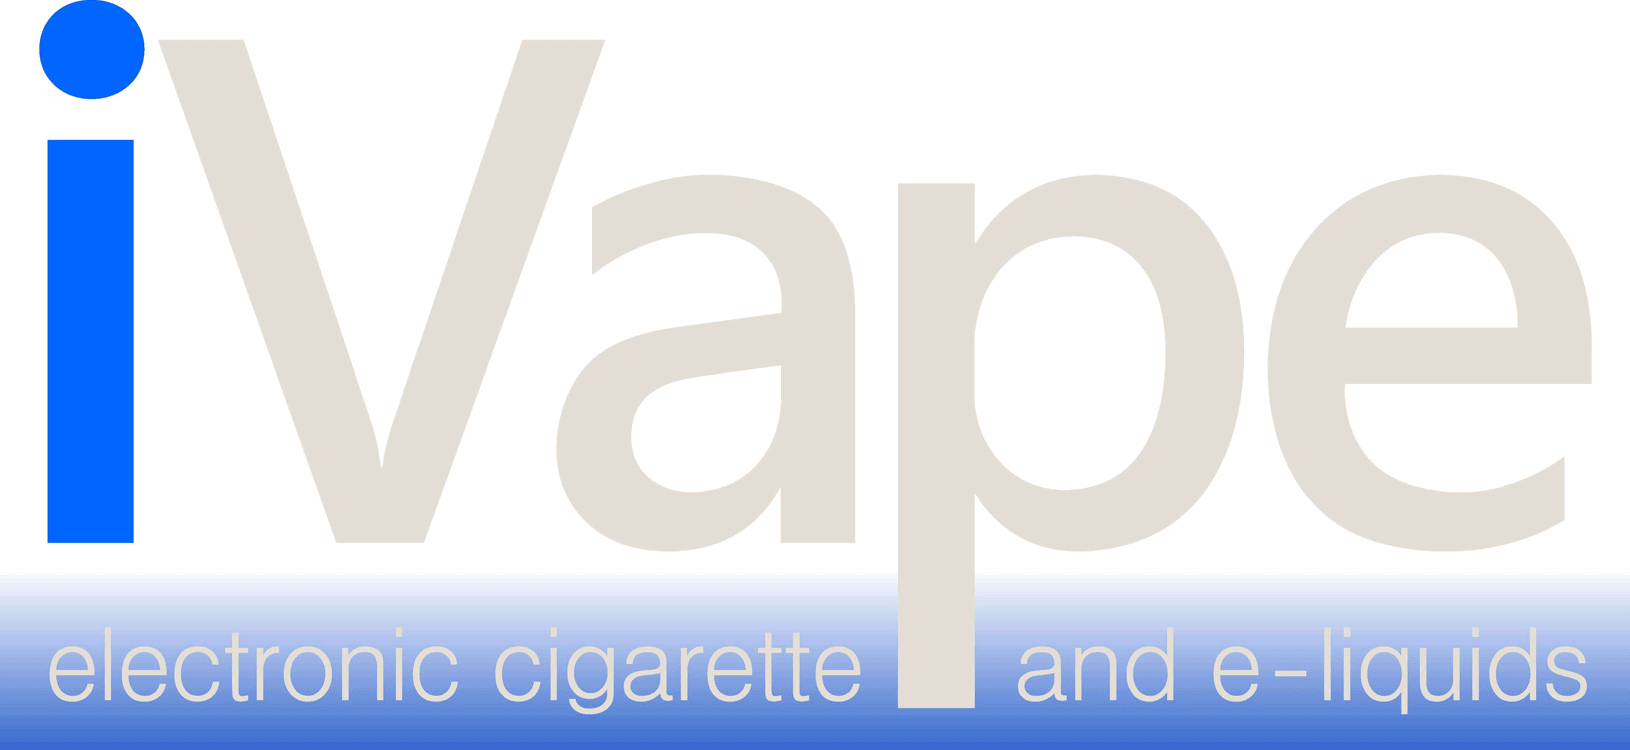 iVape electronic cigarette and e-liquids